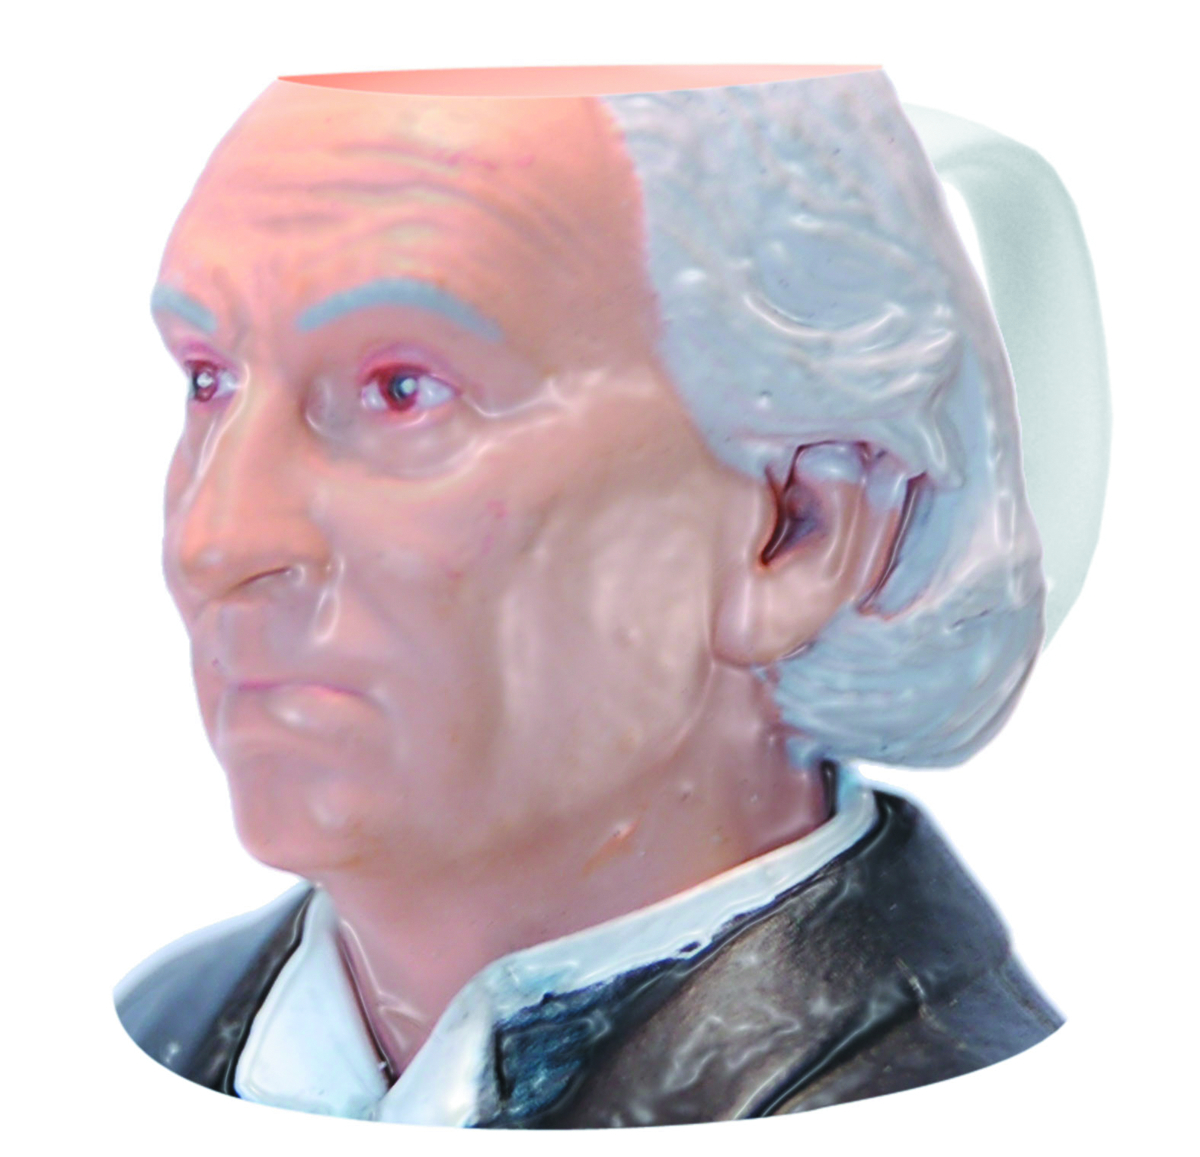 DOCTOR WHO 1ST DOCTOR FIGURAL MUG